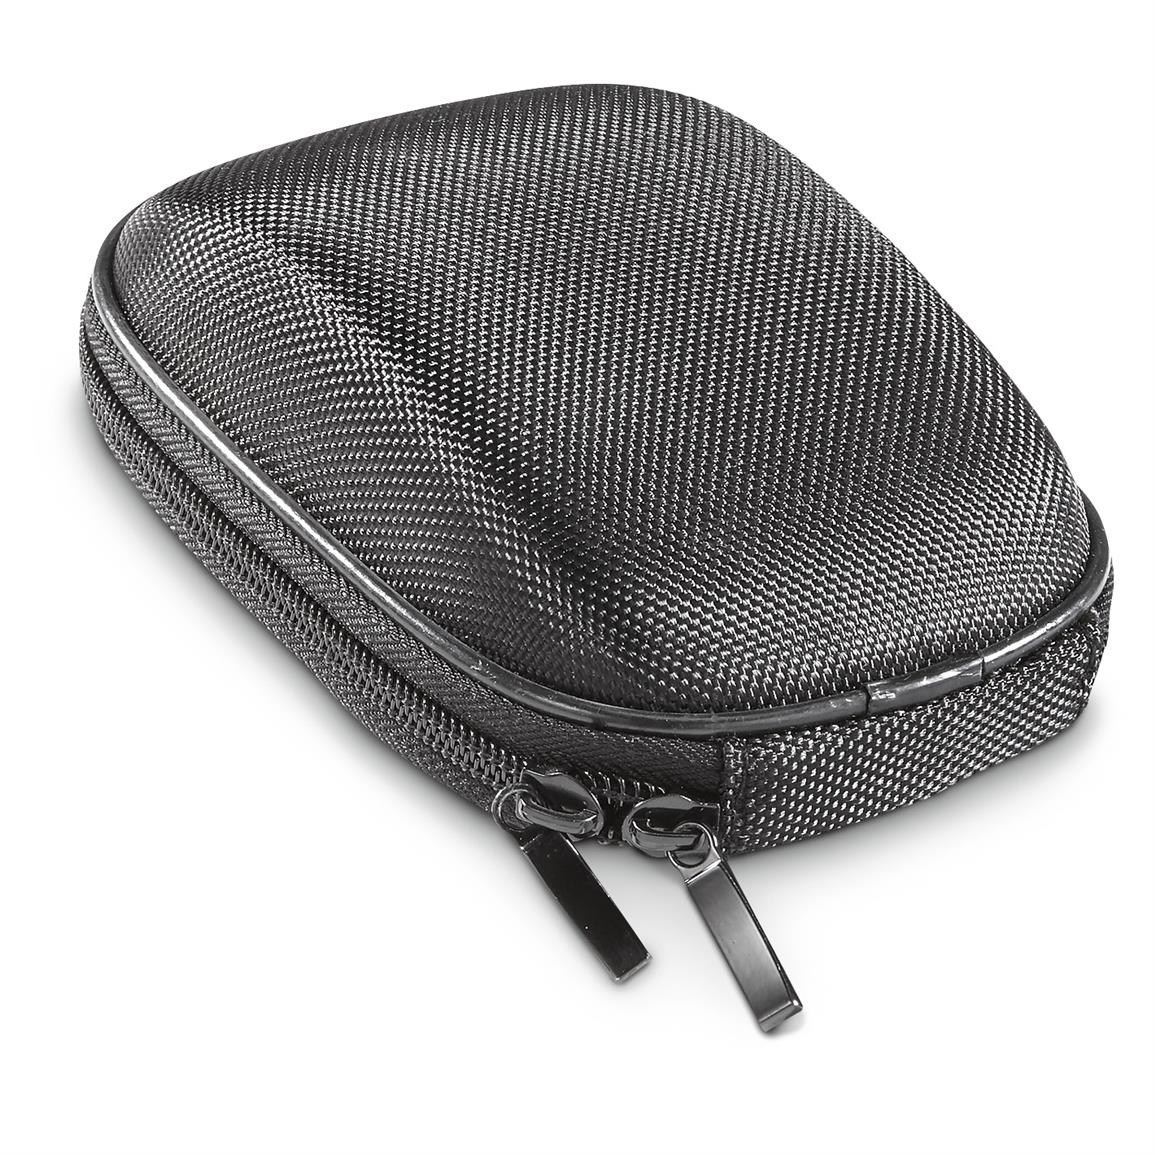 Includes case, lanyard and lens cloth